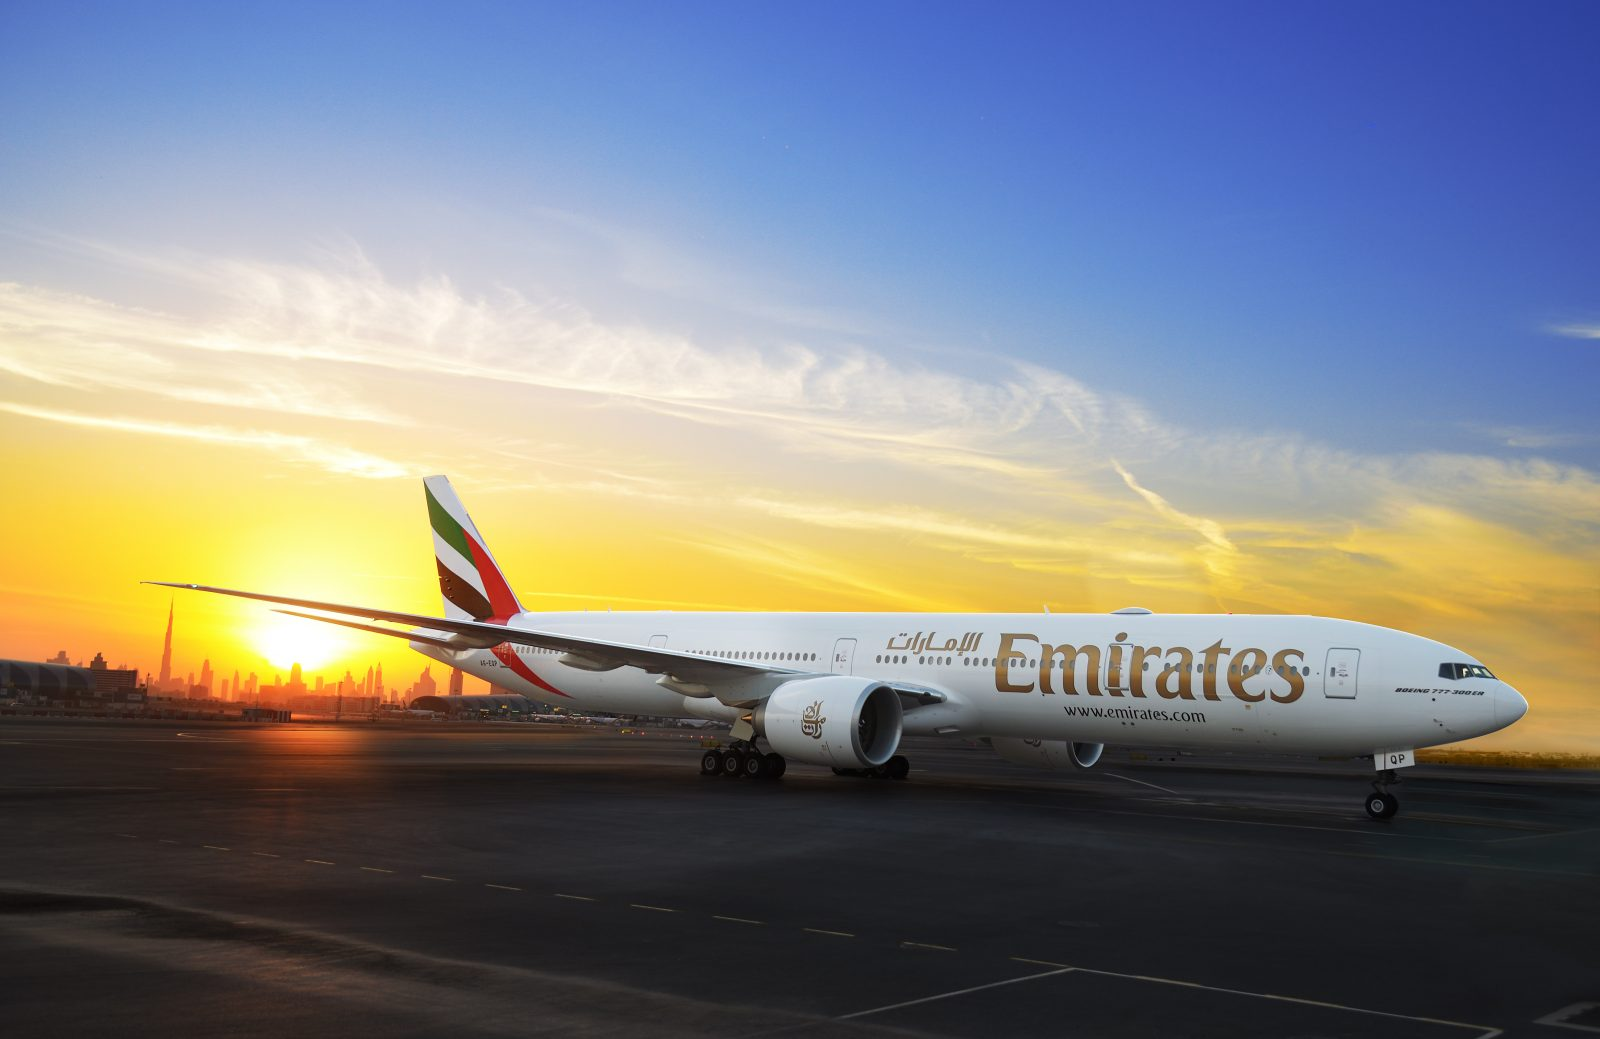 Dubai's Emirates to Resume Scheduled Passenger Flights